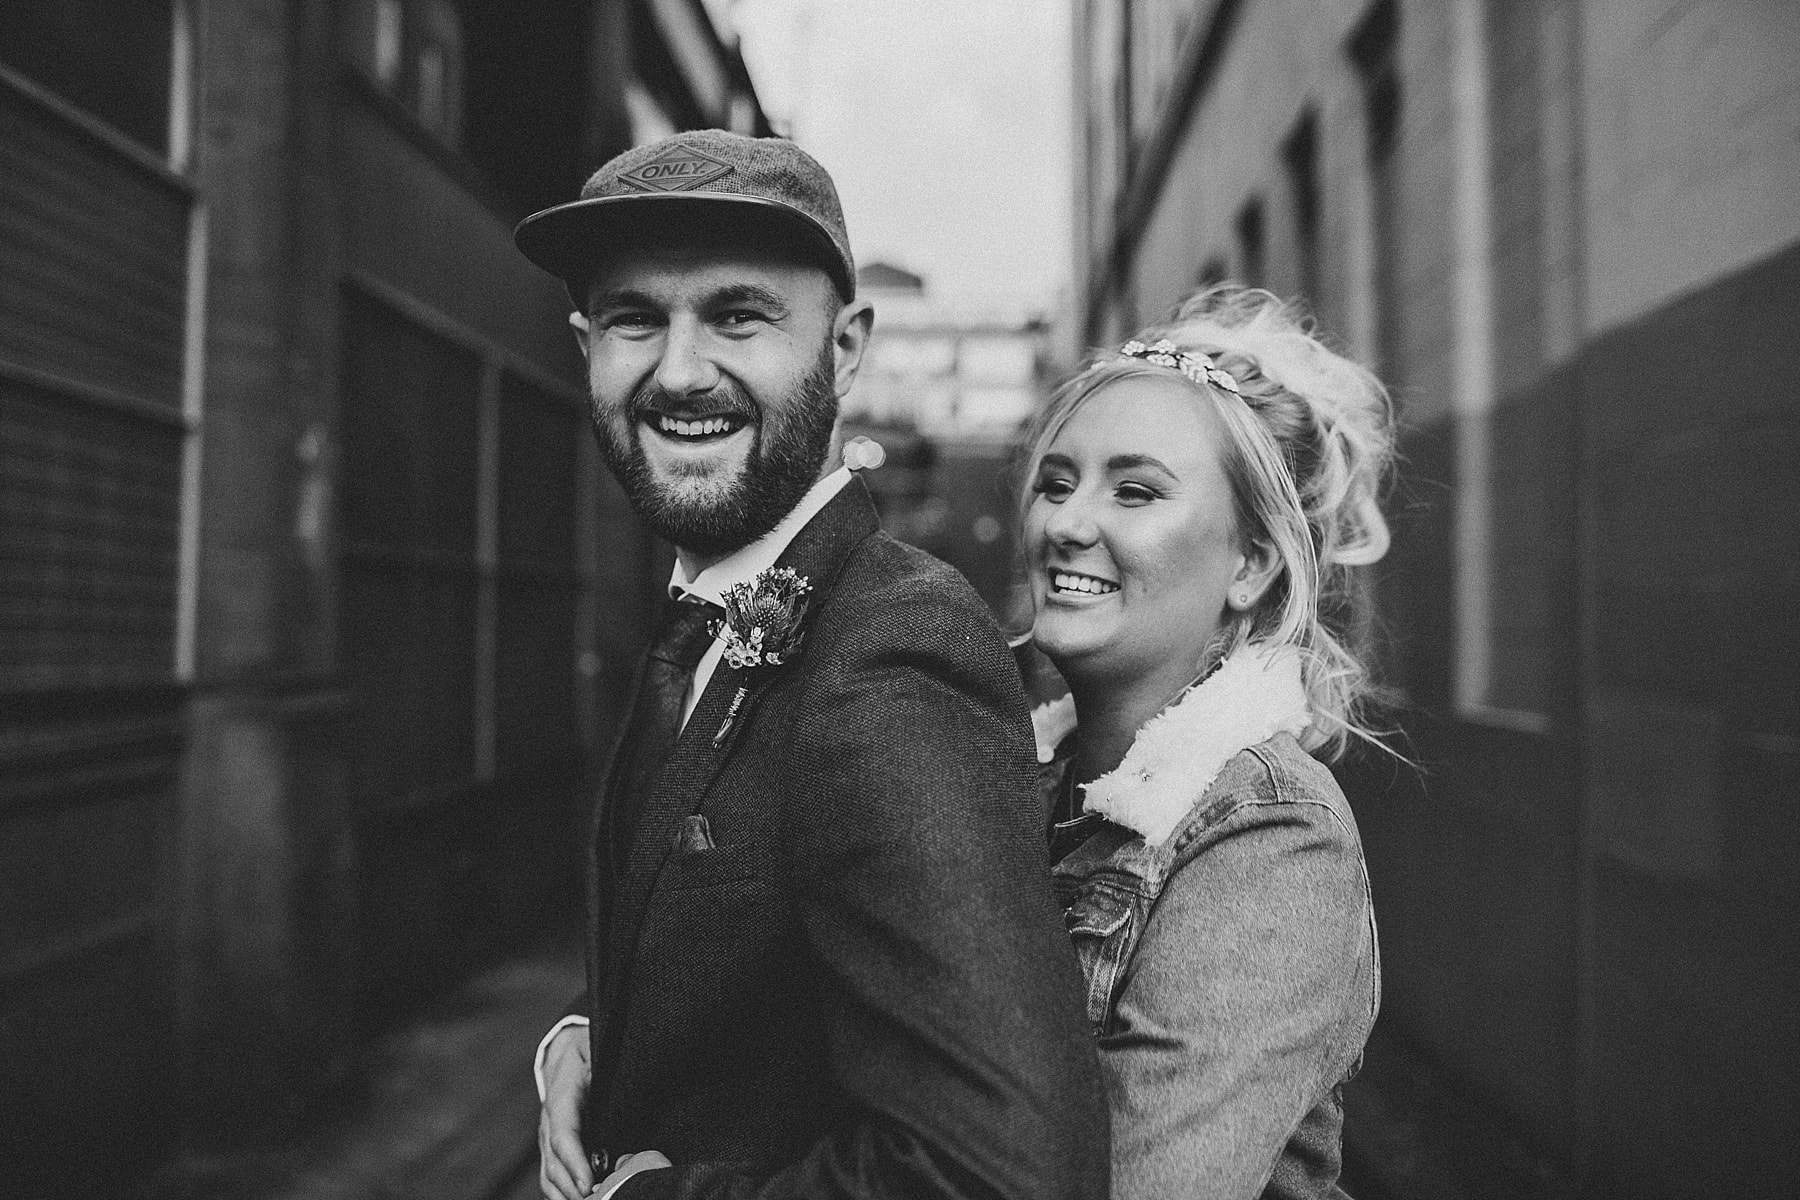 belfast city wedding,AMPM cabaret supper club,winter wedding,belfast christmas market wedding,belfast wedding photographers,the treehouse belfast,